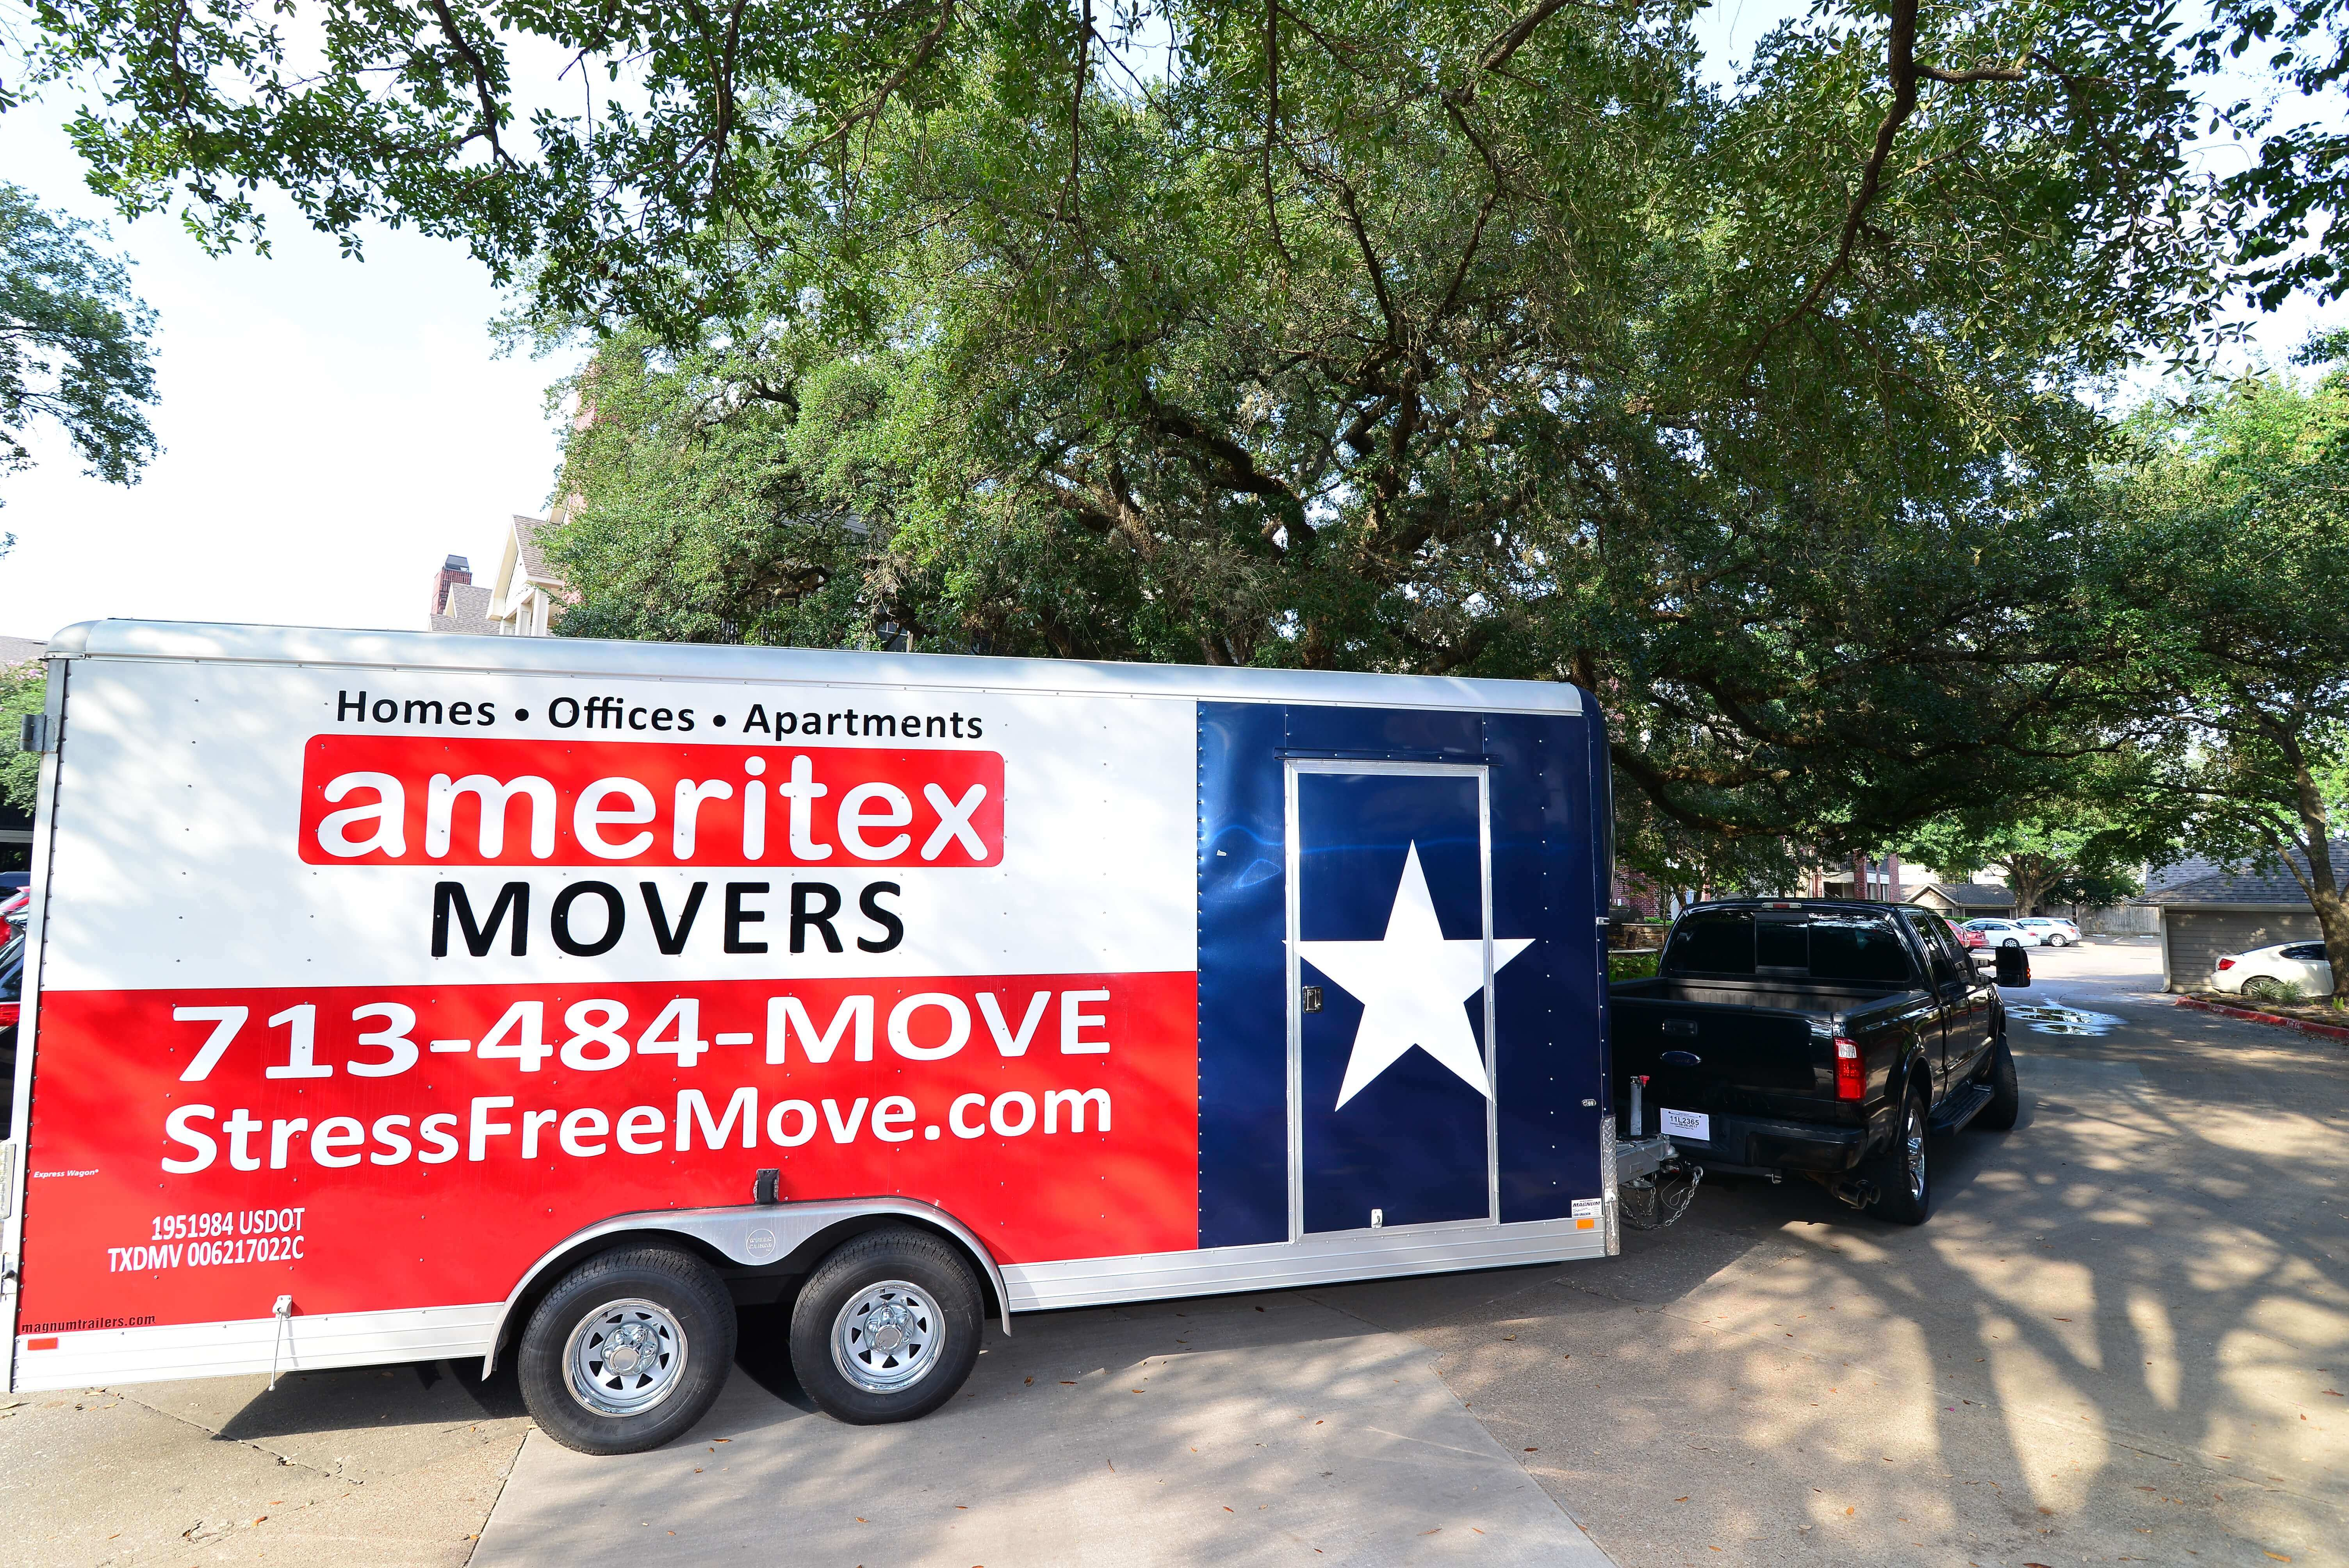 Movers In Houston Rocks On The River Savannah